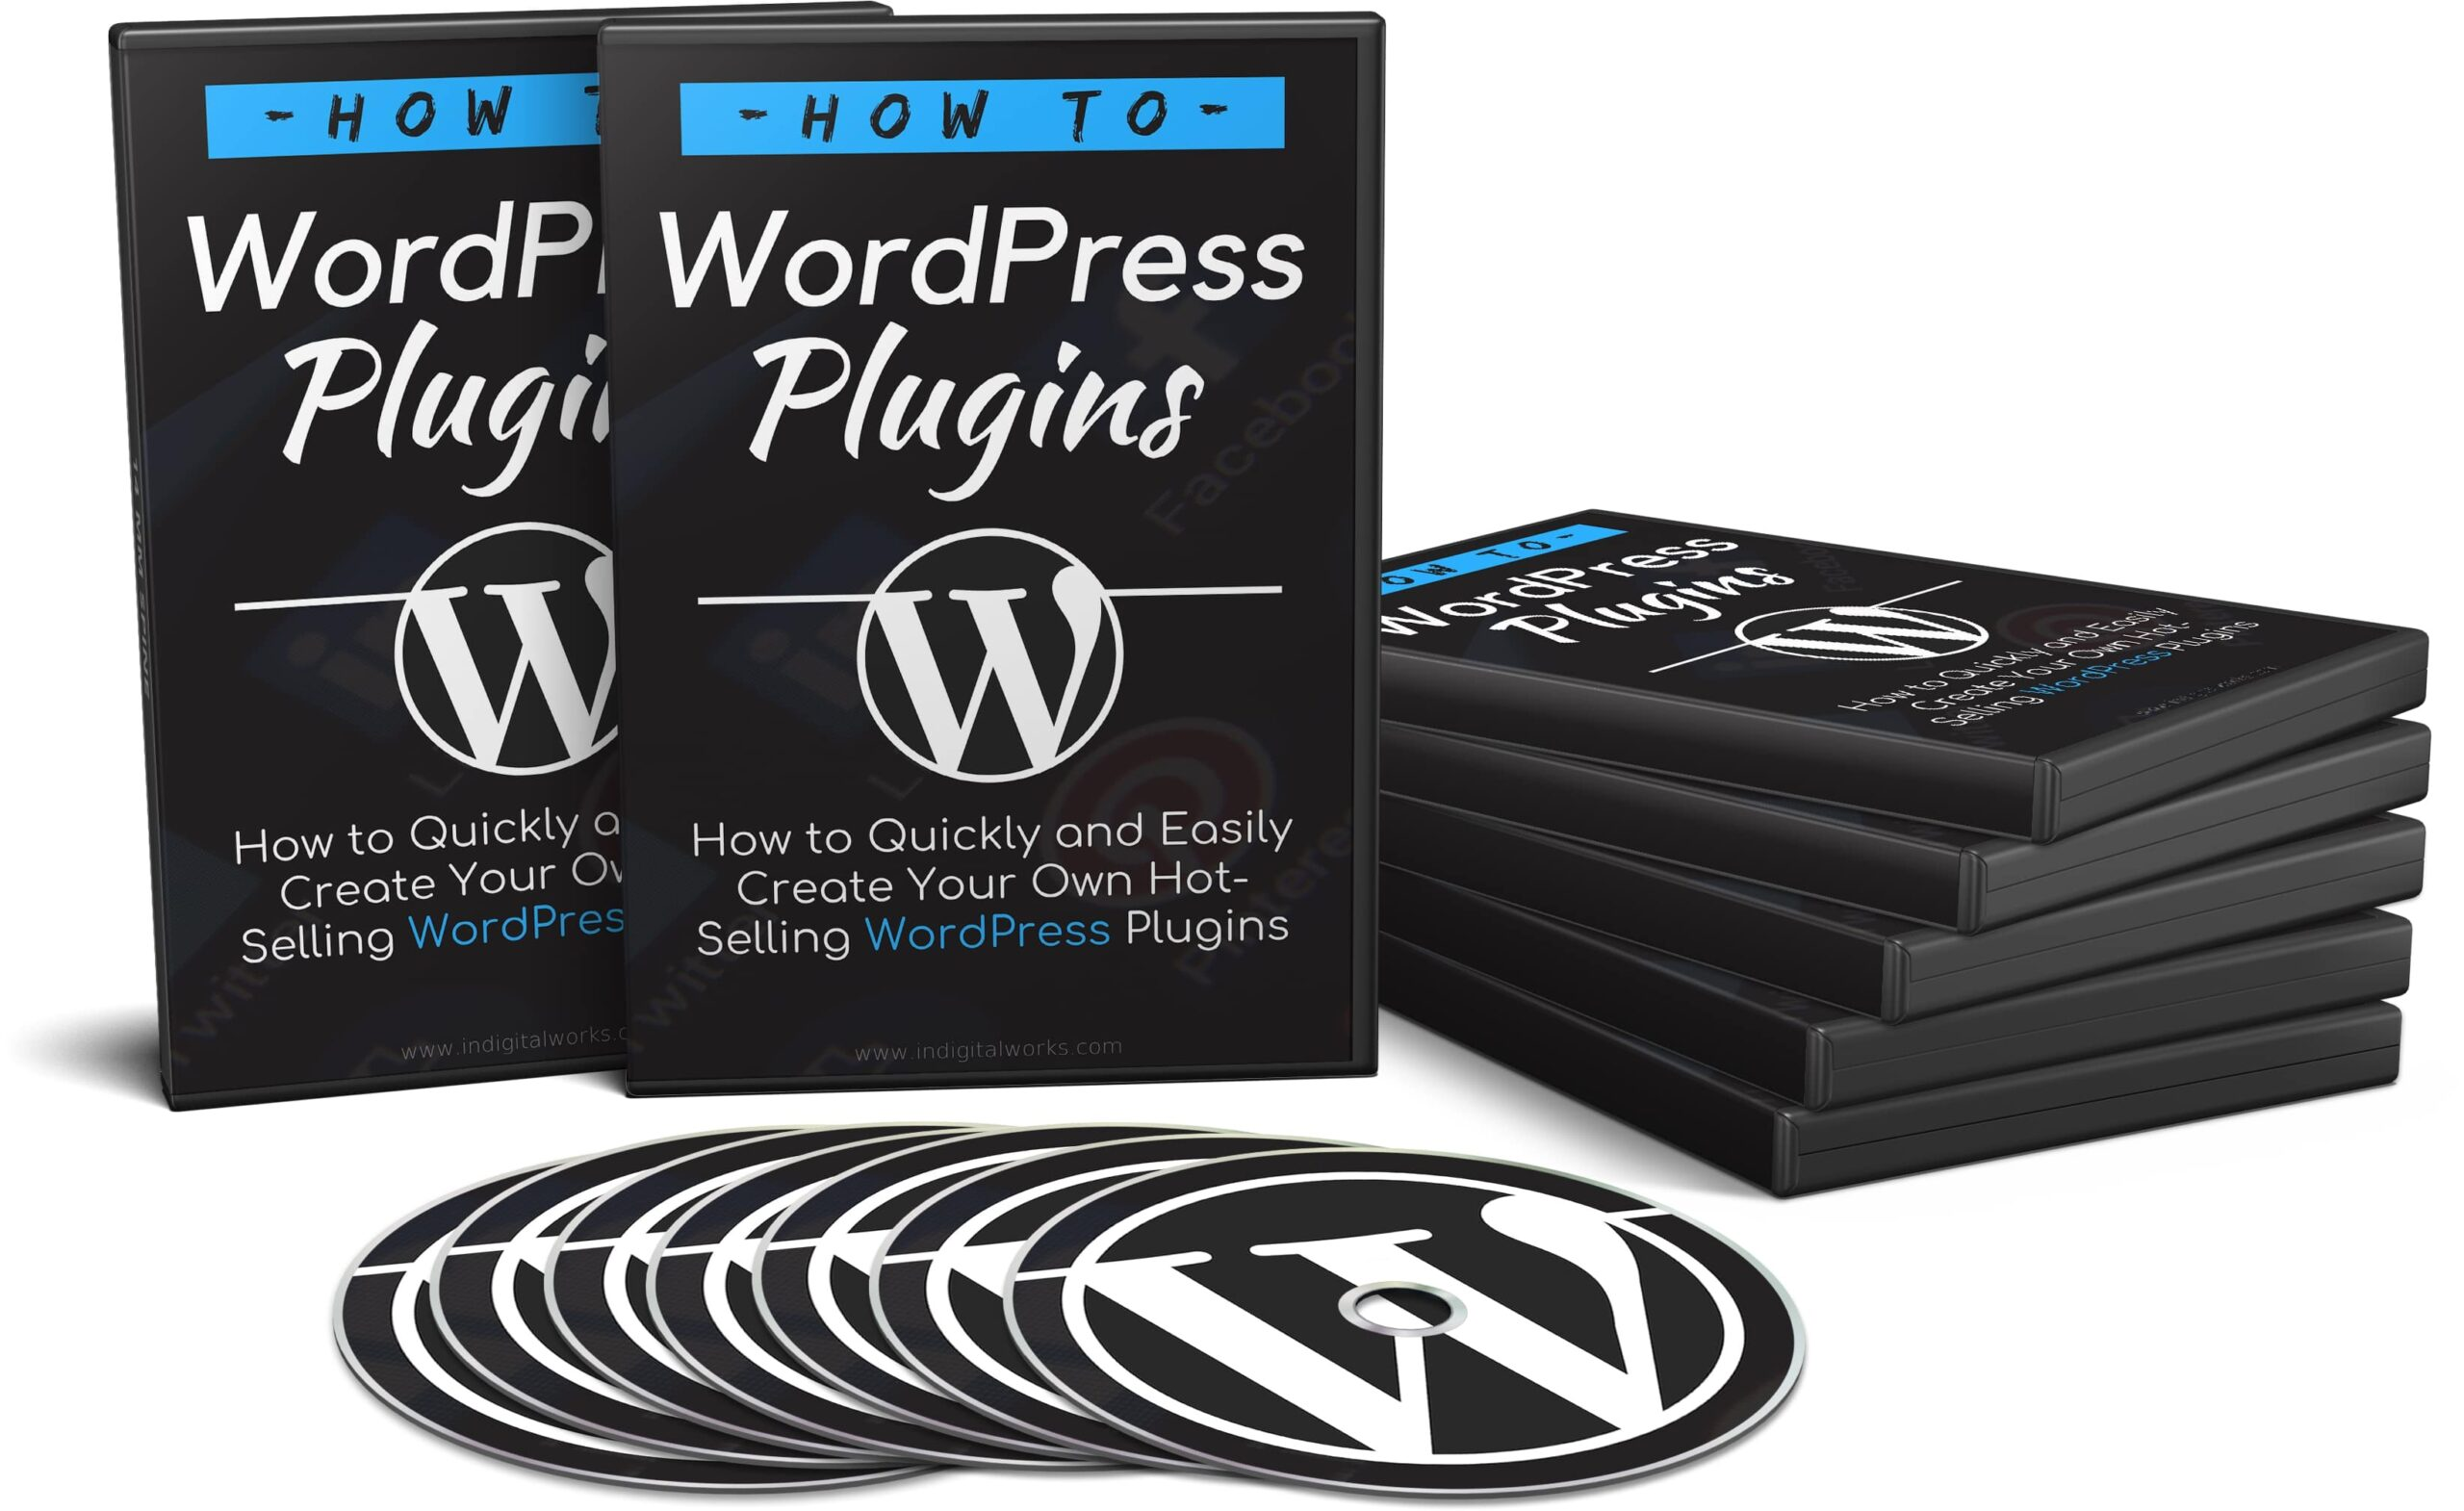 How To WP Plugins (Reseller Rights)